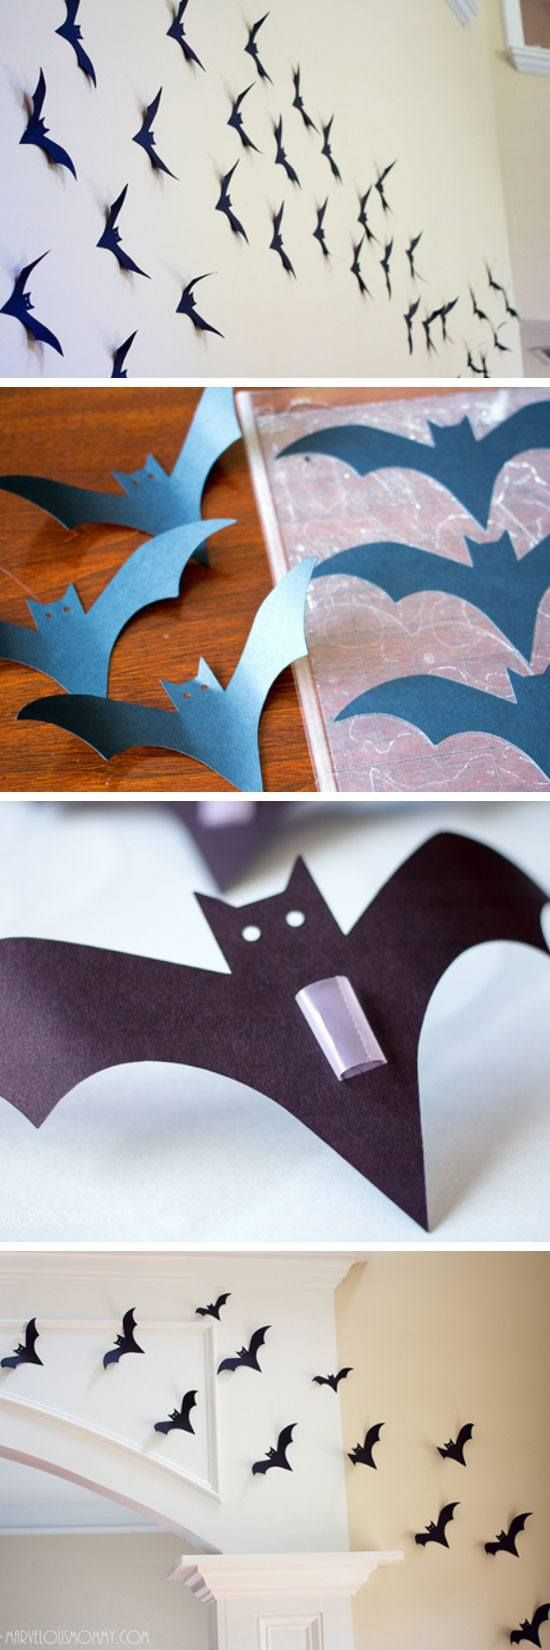 25 diy halloween decorating ideas for kids on a budget